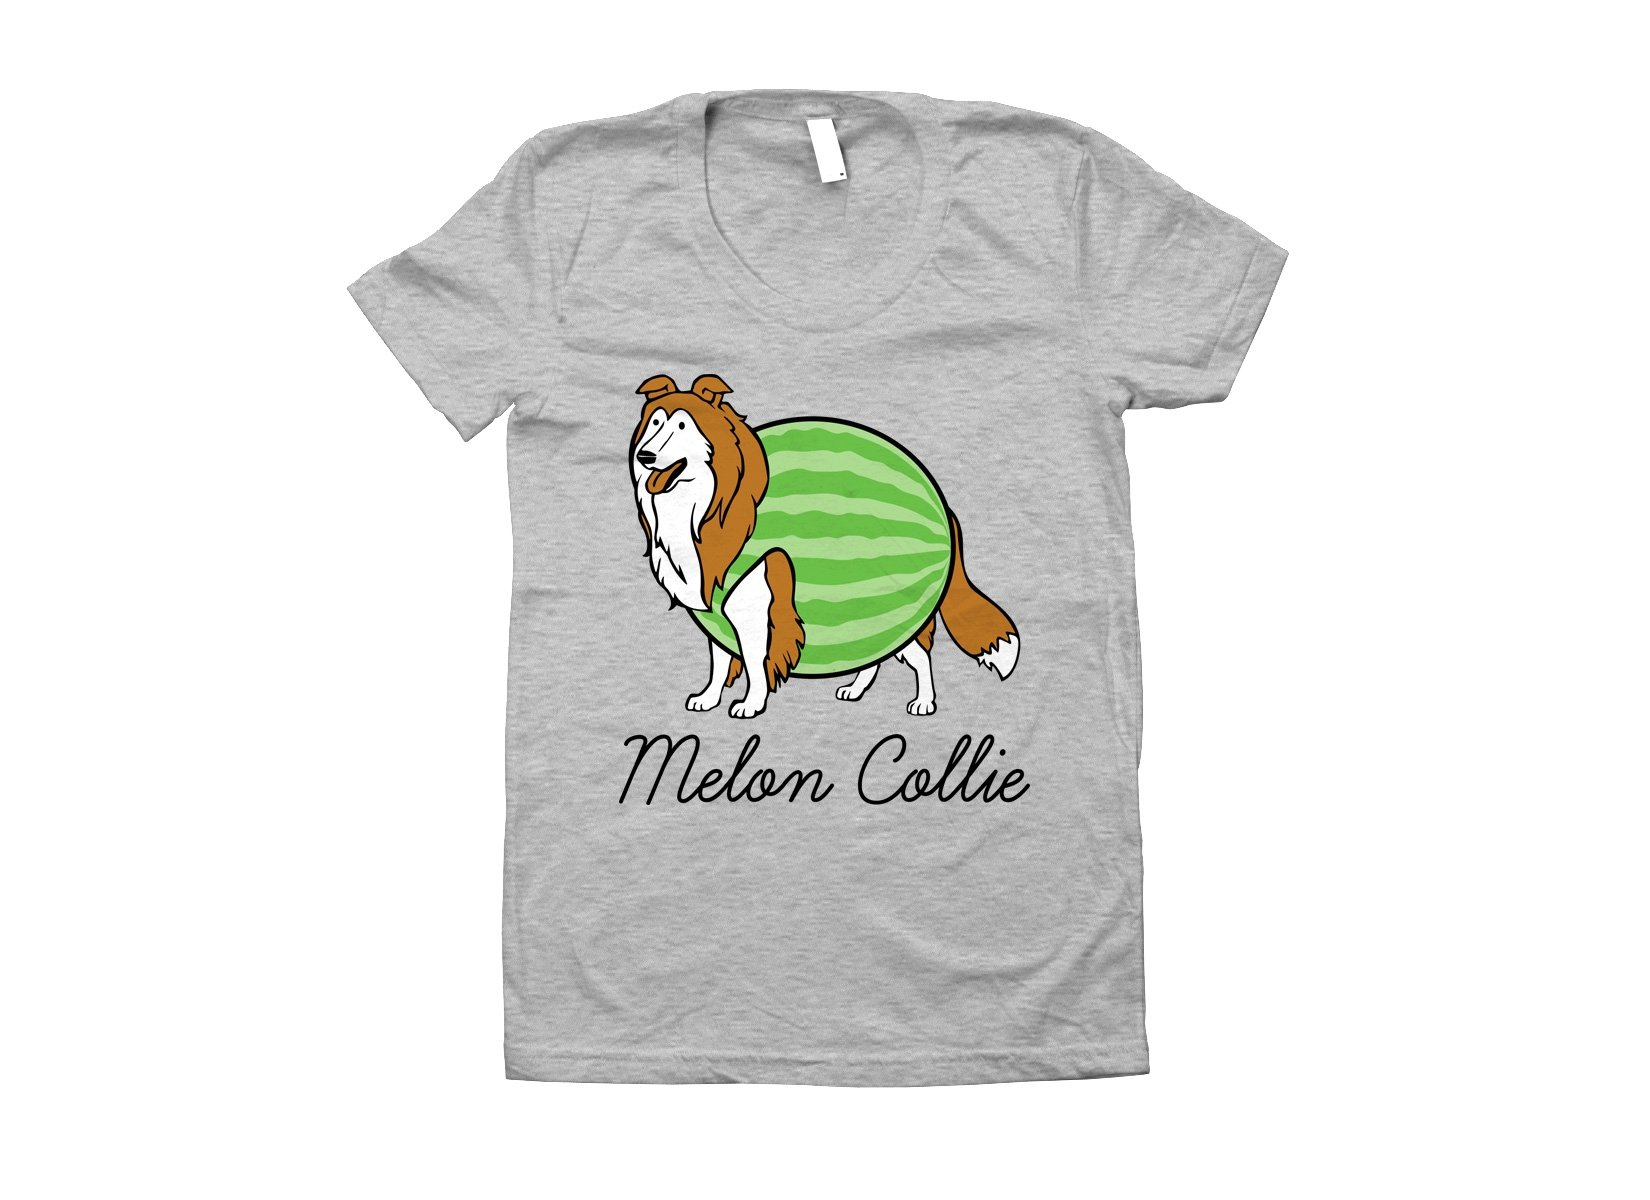 Melon Collie on Juniors T-Shirt